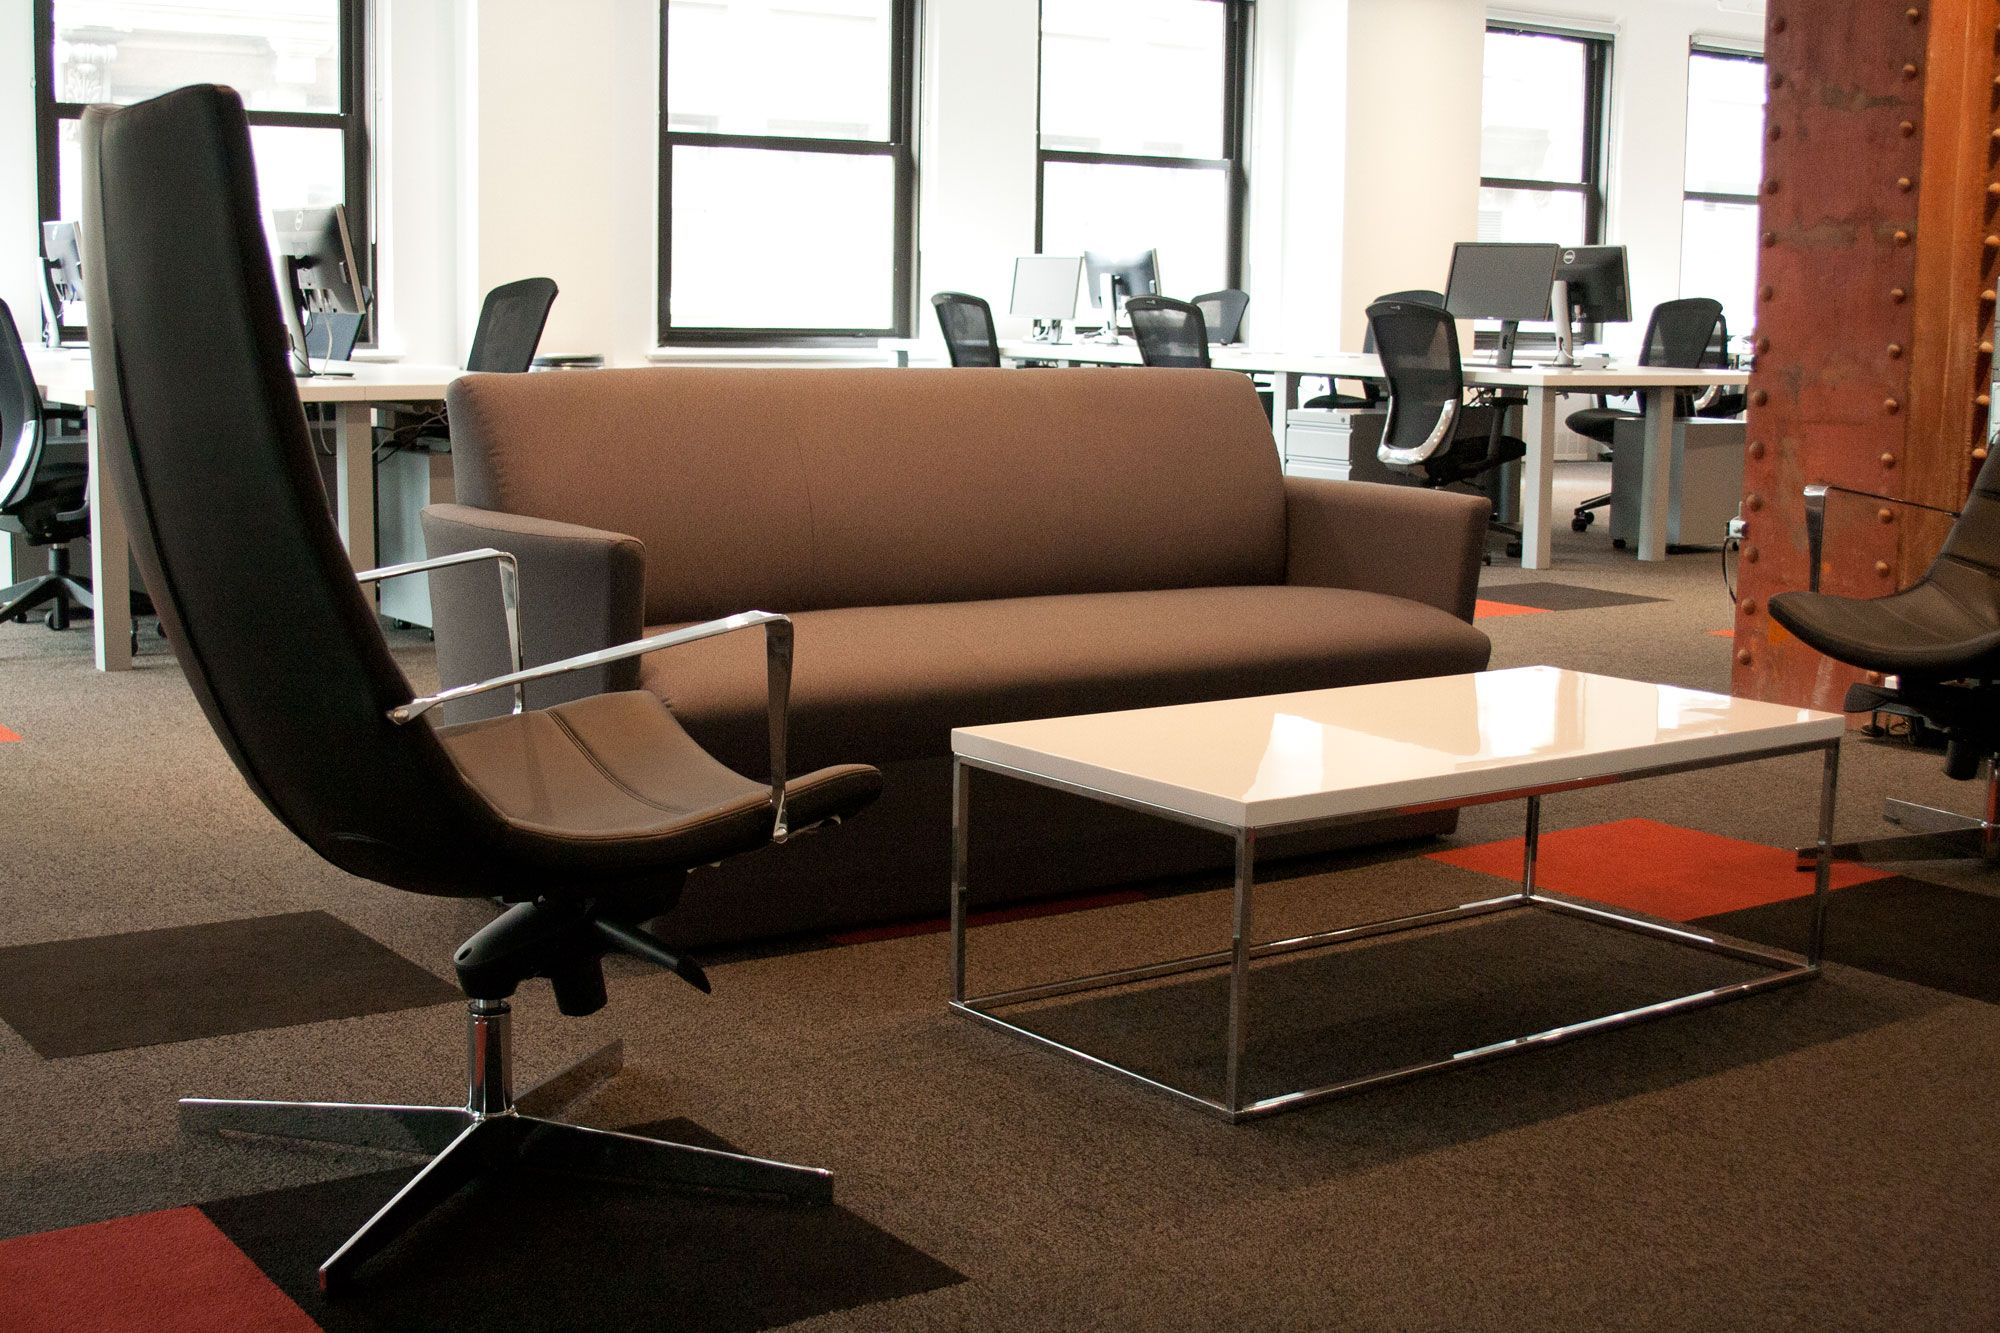 Office Furniture Heaven | Furniture, Home, Home office